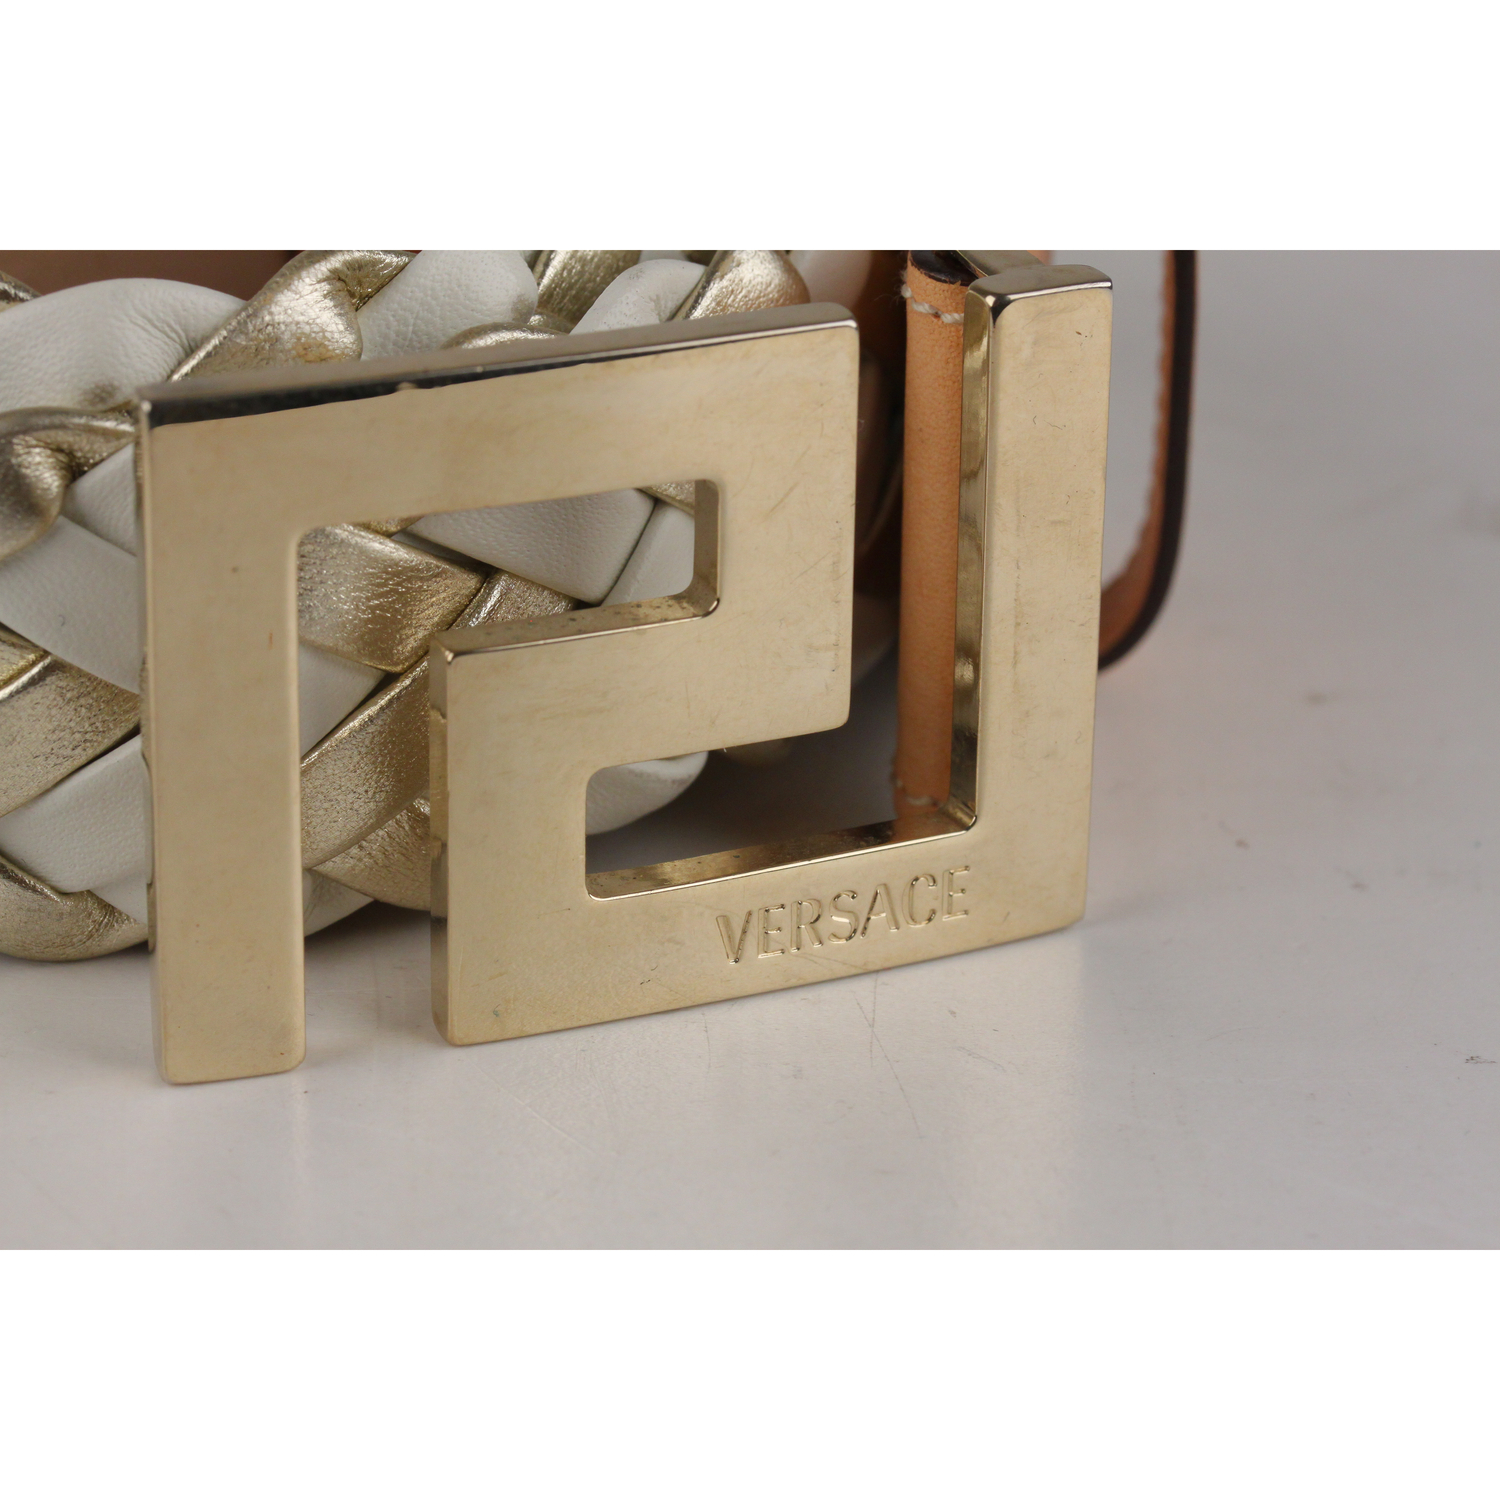 54b8c7e23 White & Light gold leather VERSACE waist belt - Braided design and studs  detailing - Gold metal buckle with engraved VERSACE signature - Width: 1  1/2 inches ...